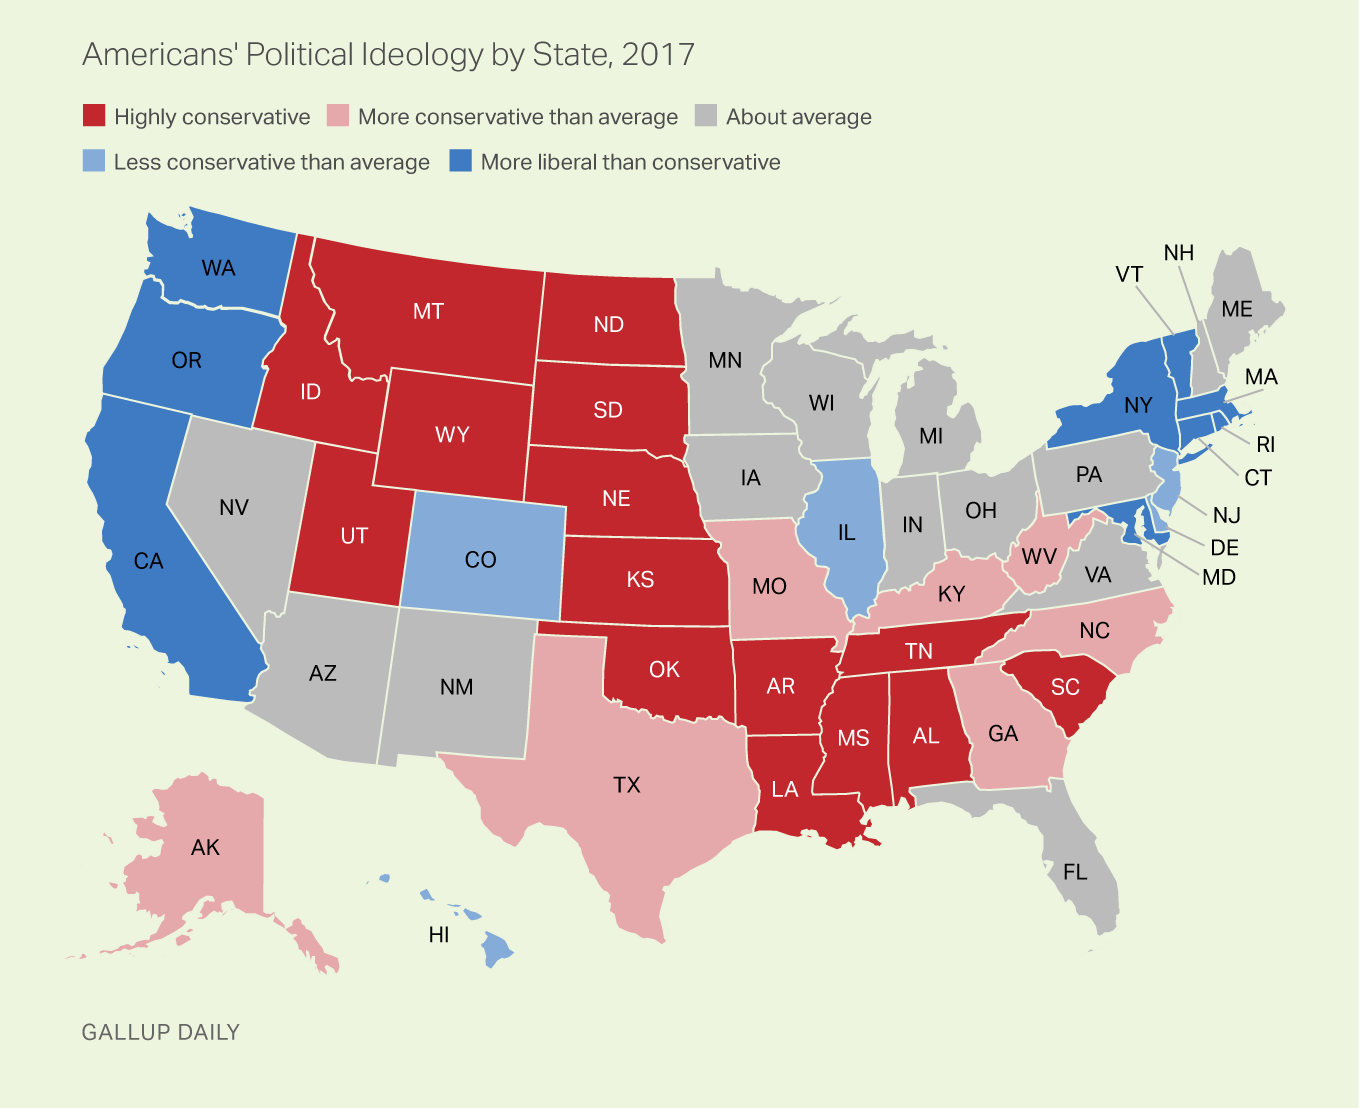 Americans political ideology by state 2017 politics united americans political ideology by state 2017 politics united states publicscrutiny Choice Image